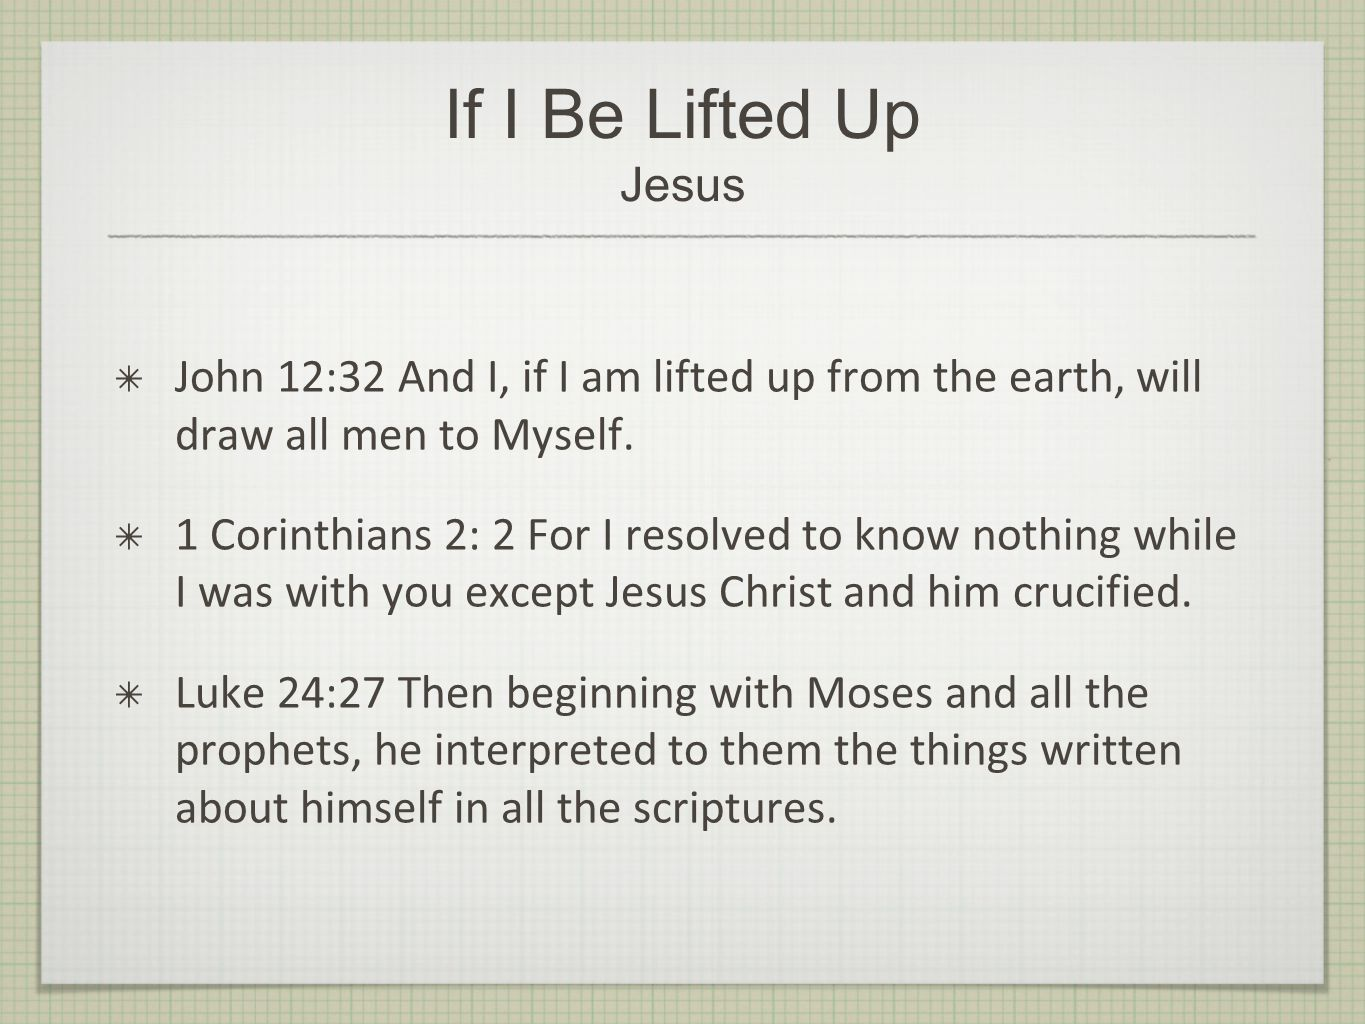 If I Be Lifted Up Jesus John 12:32 And I, if I am lifted up from the earth, will draw all men to Myself.